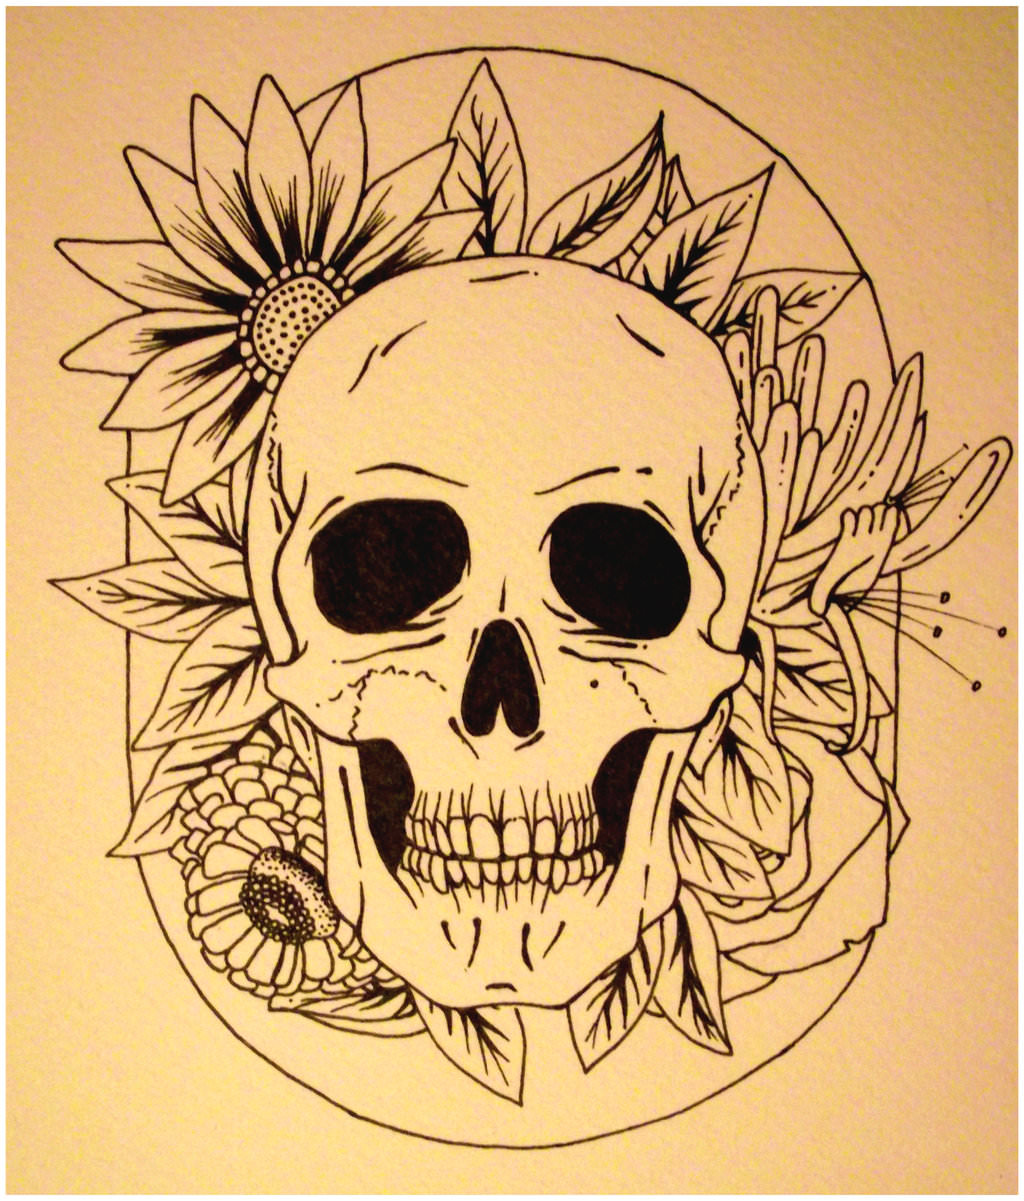 63c09beb4d40c Flower Skull Drawing at GetDrawings.com | Free for personal use ...